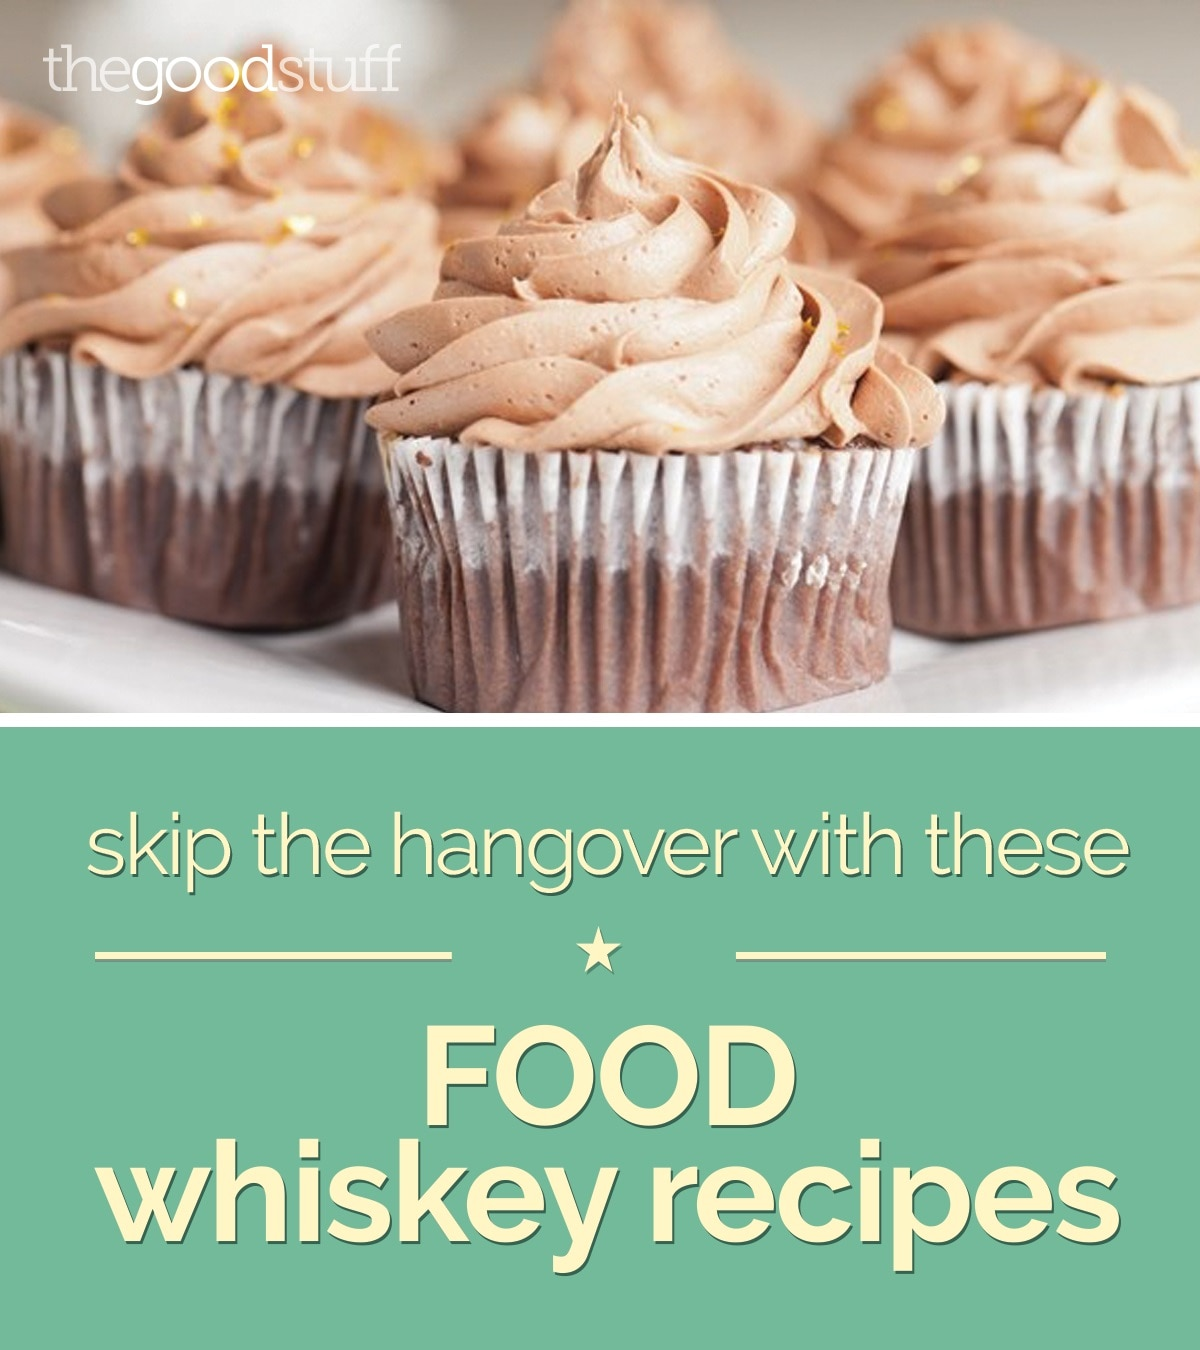 food-wiskey-recipes